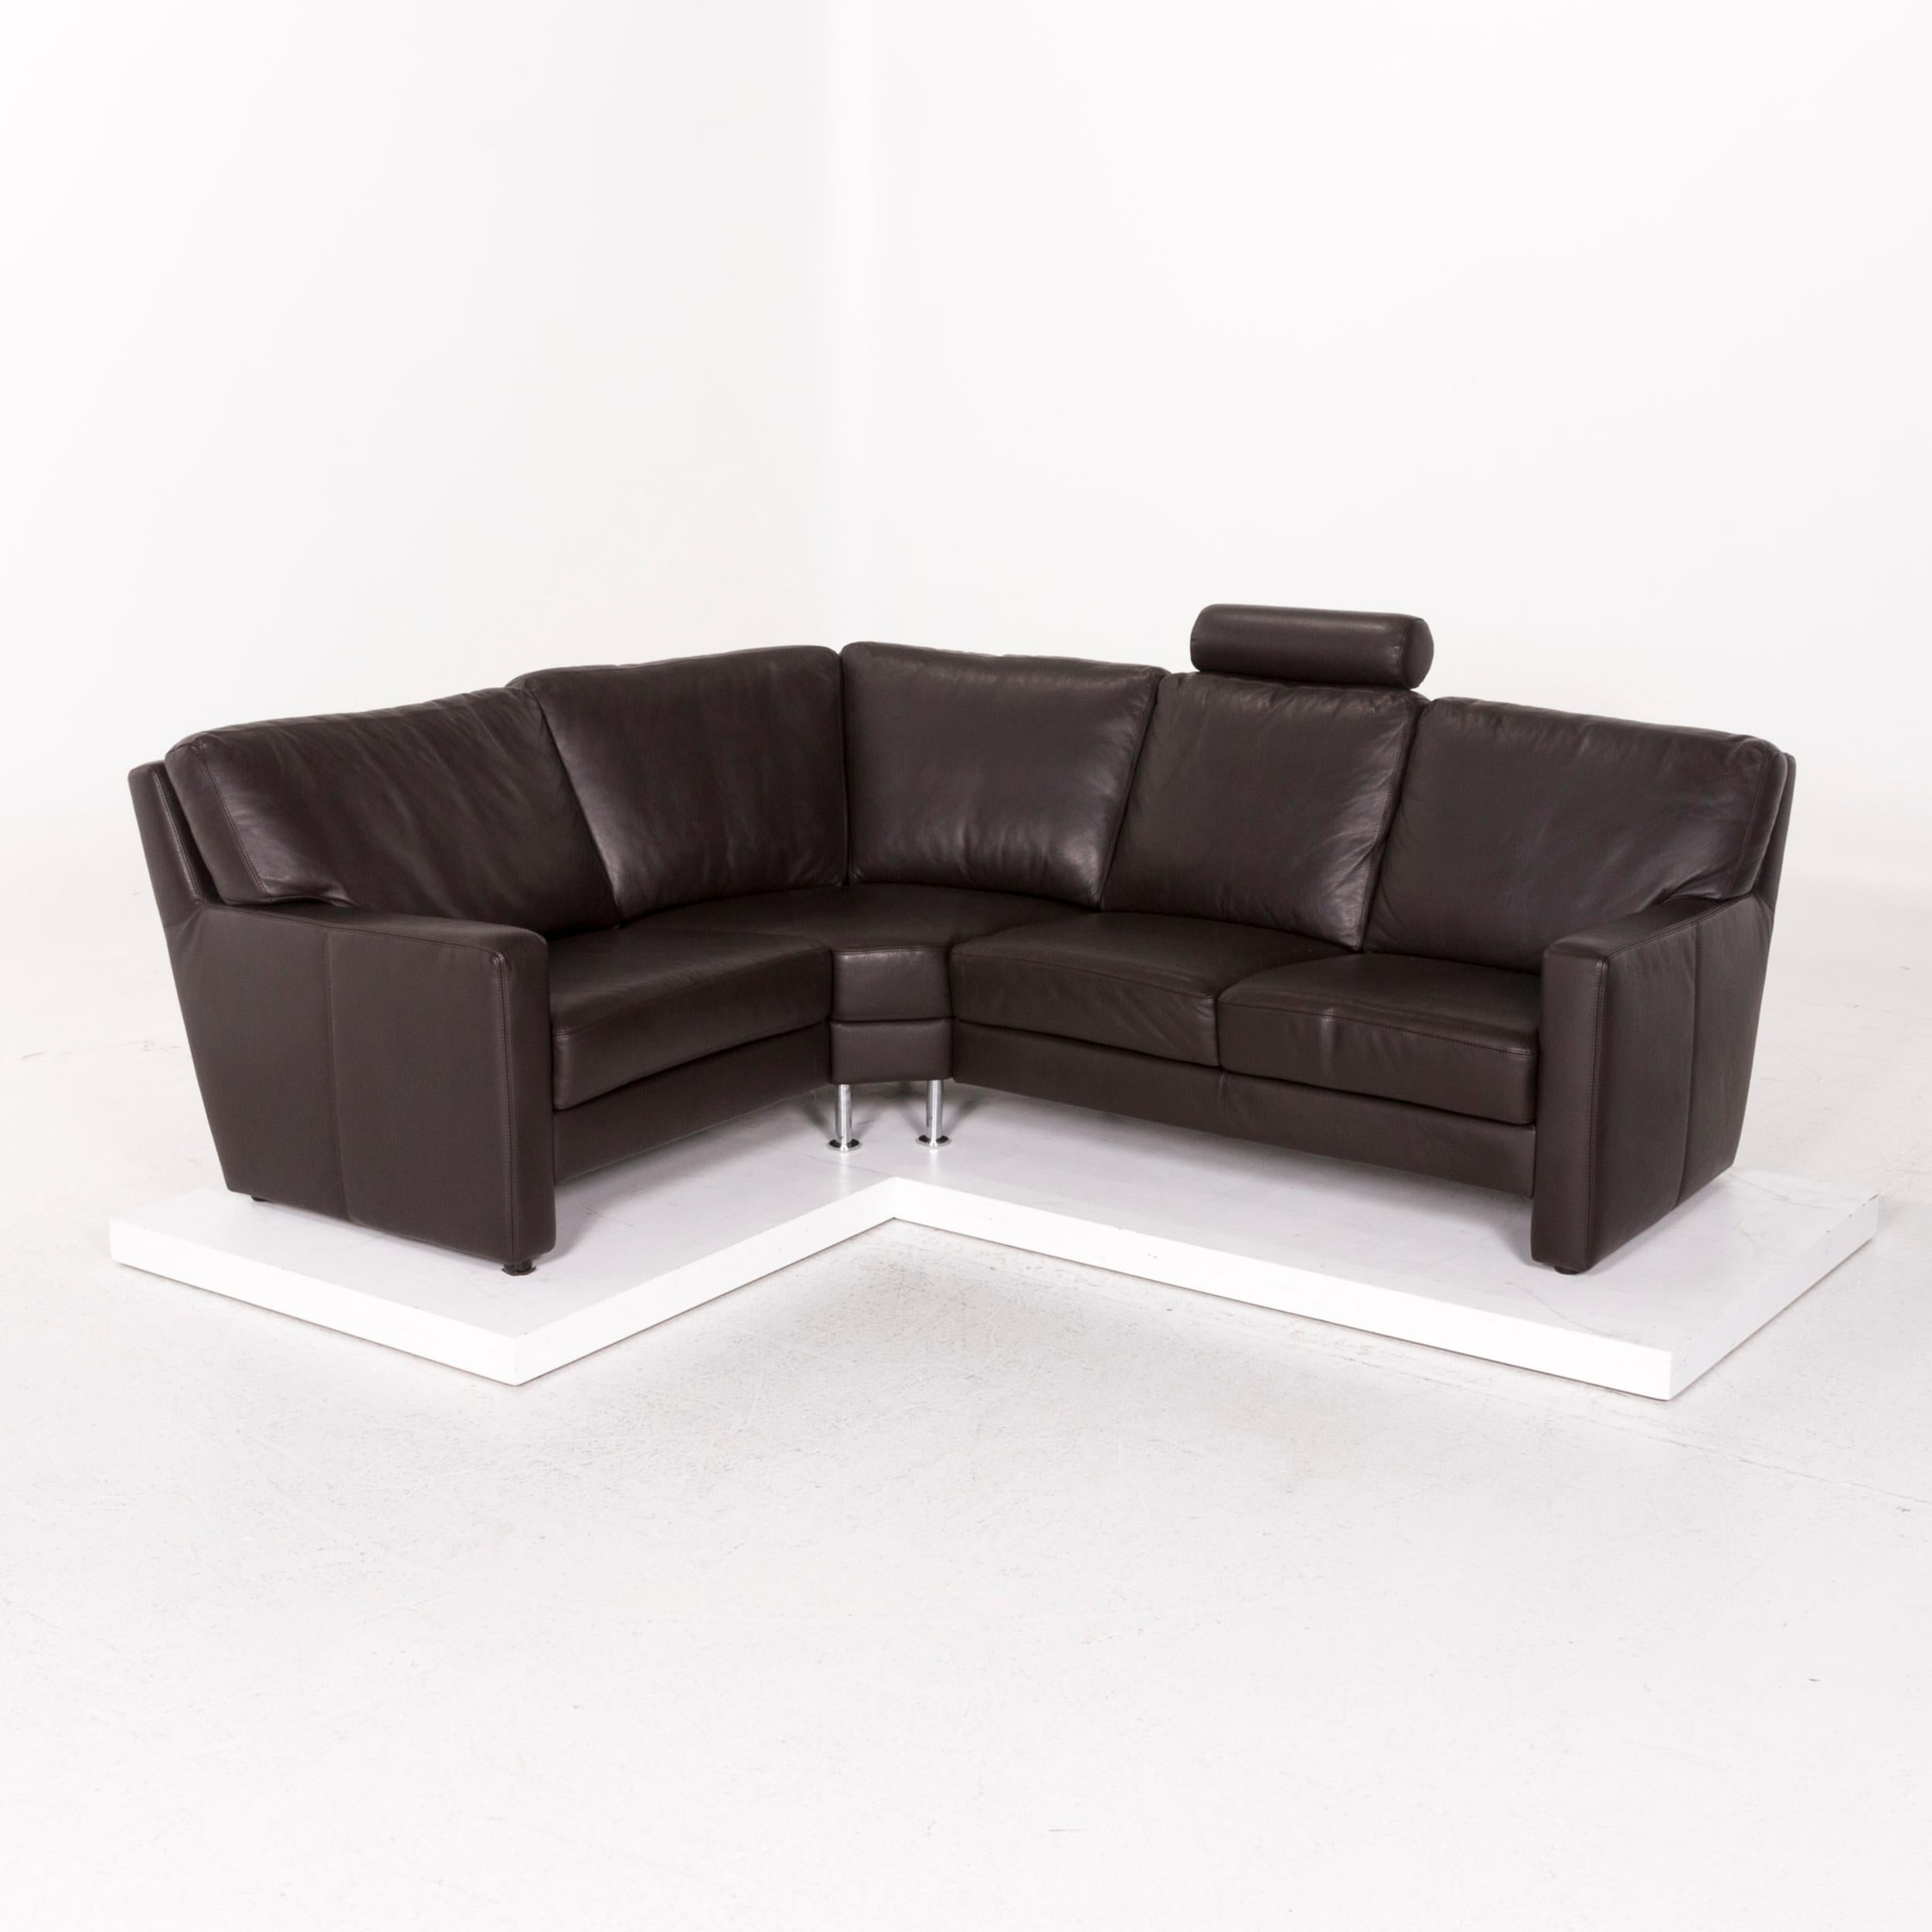 Sample Ring Leather Corner Sofa Brown Dark Brown Sofa Couch For Sale At 1stdibs